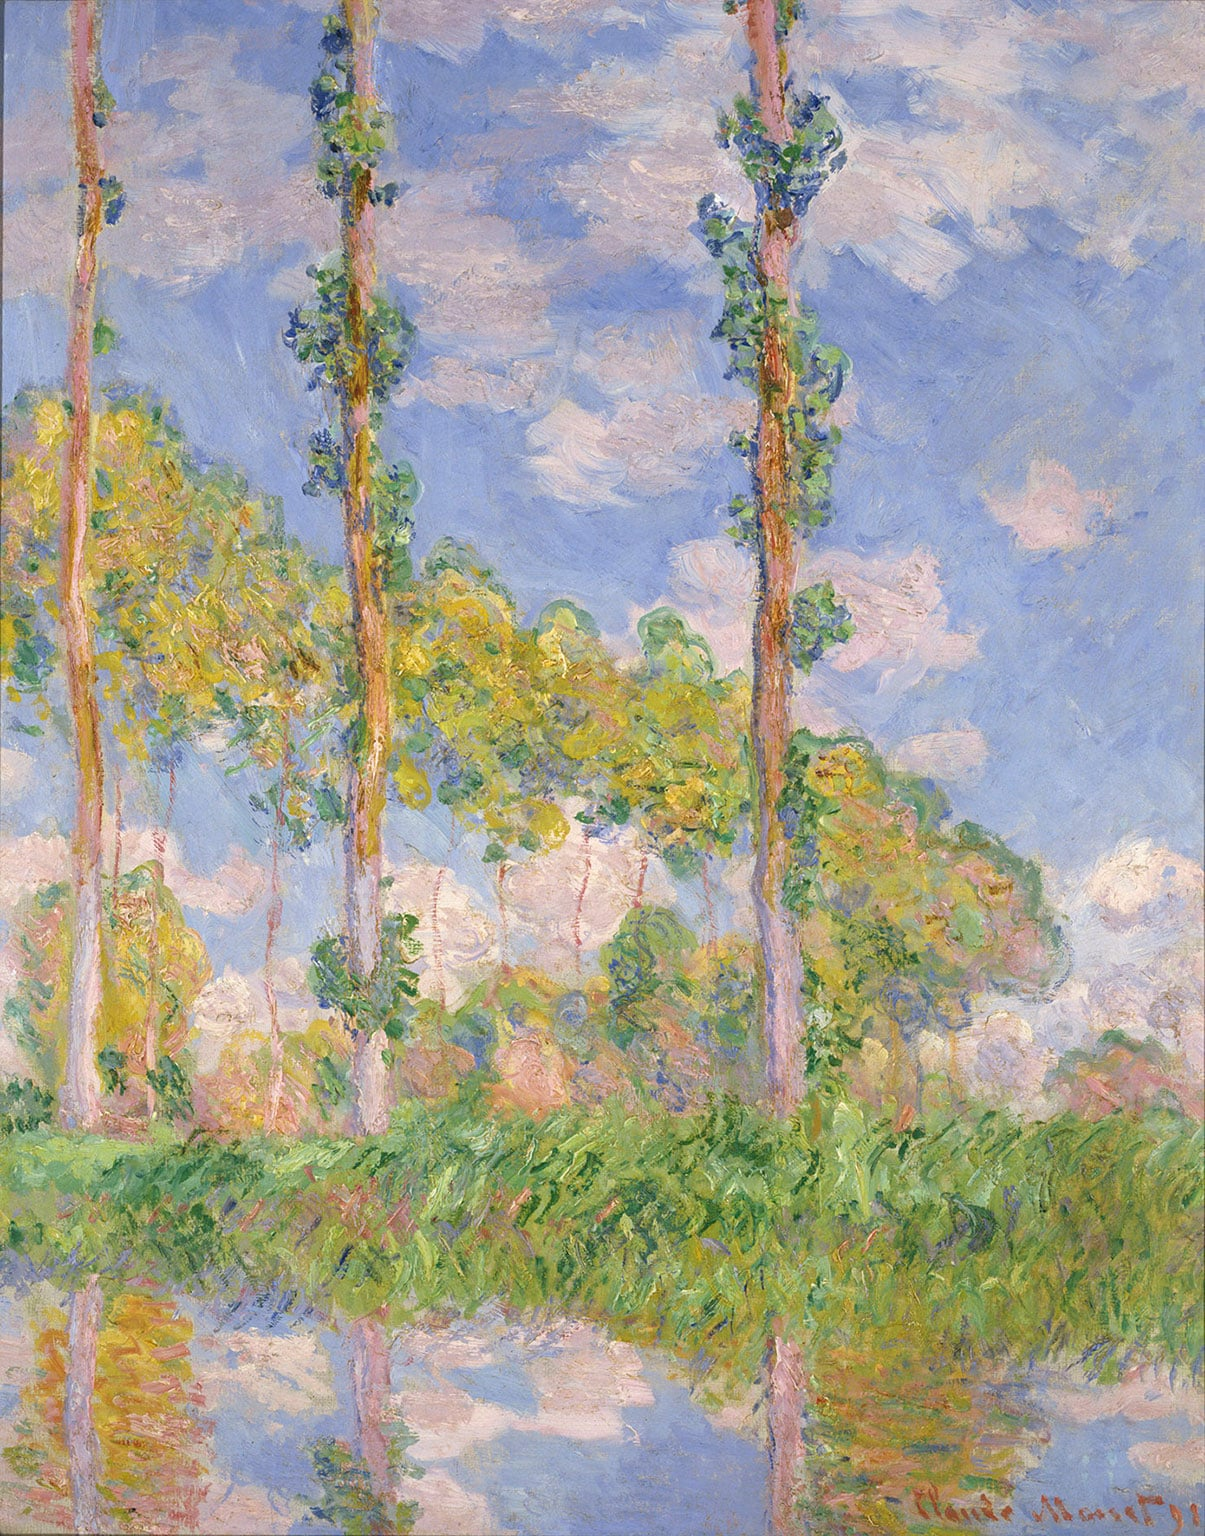 3. Inventing Impressionism, National Gallery, 50% off with National Art Pass - Claude Monet, Poplars in the Sun, 1891 © National Museum of Western Art, Tokyo